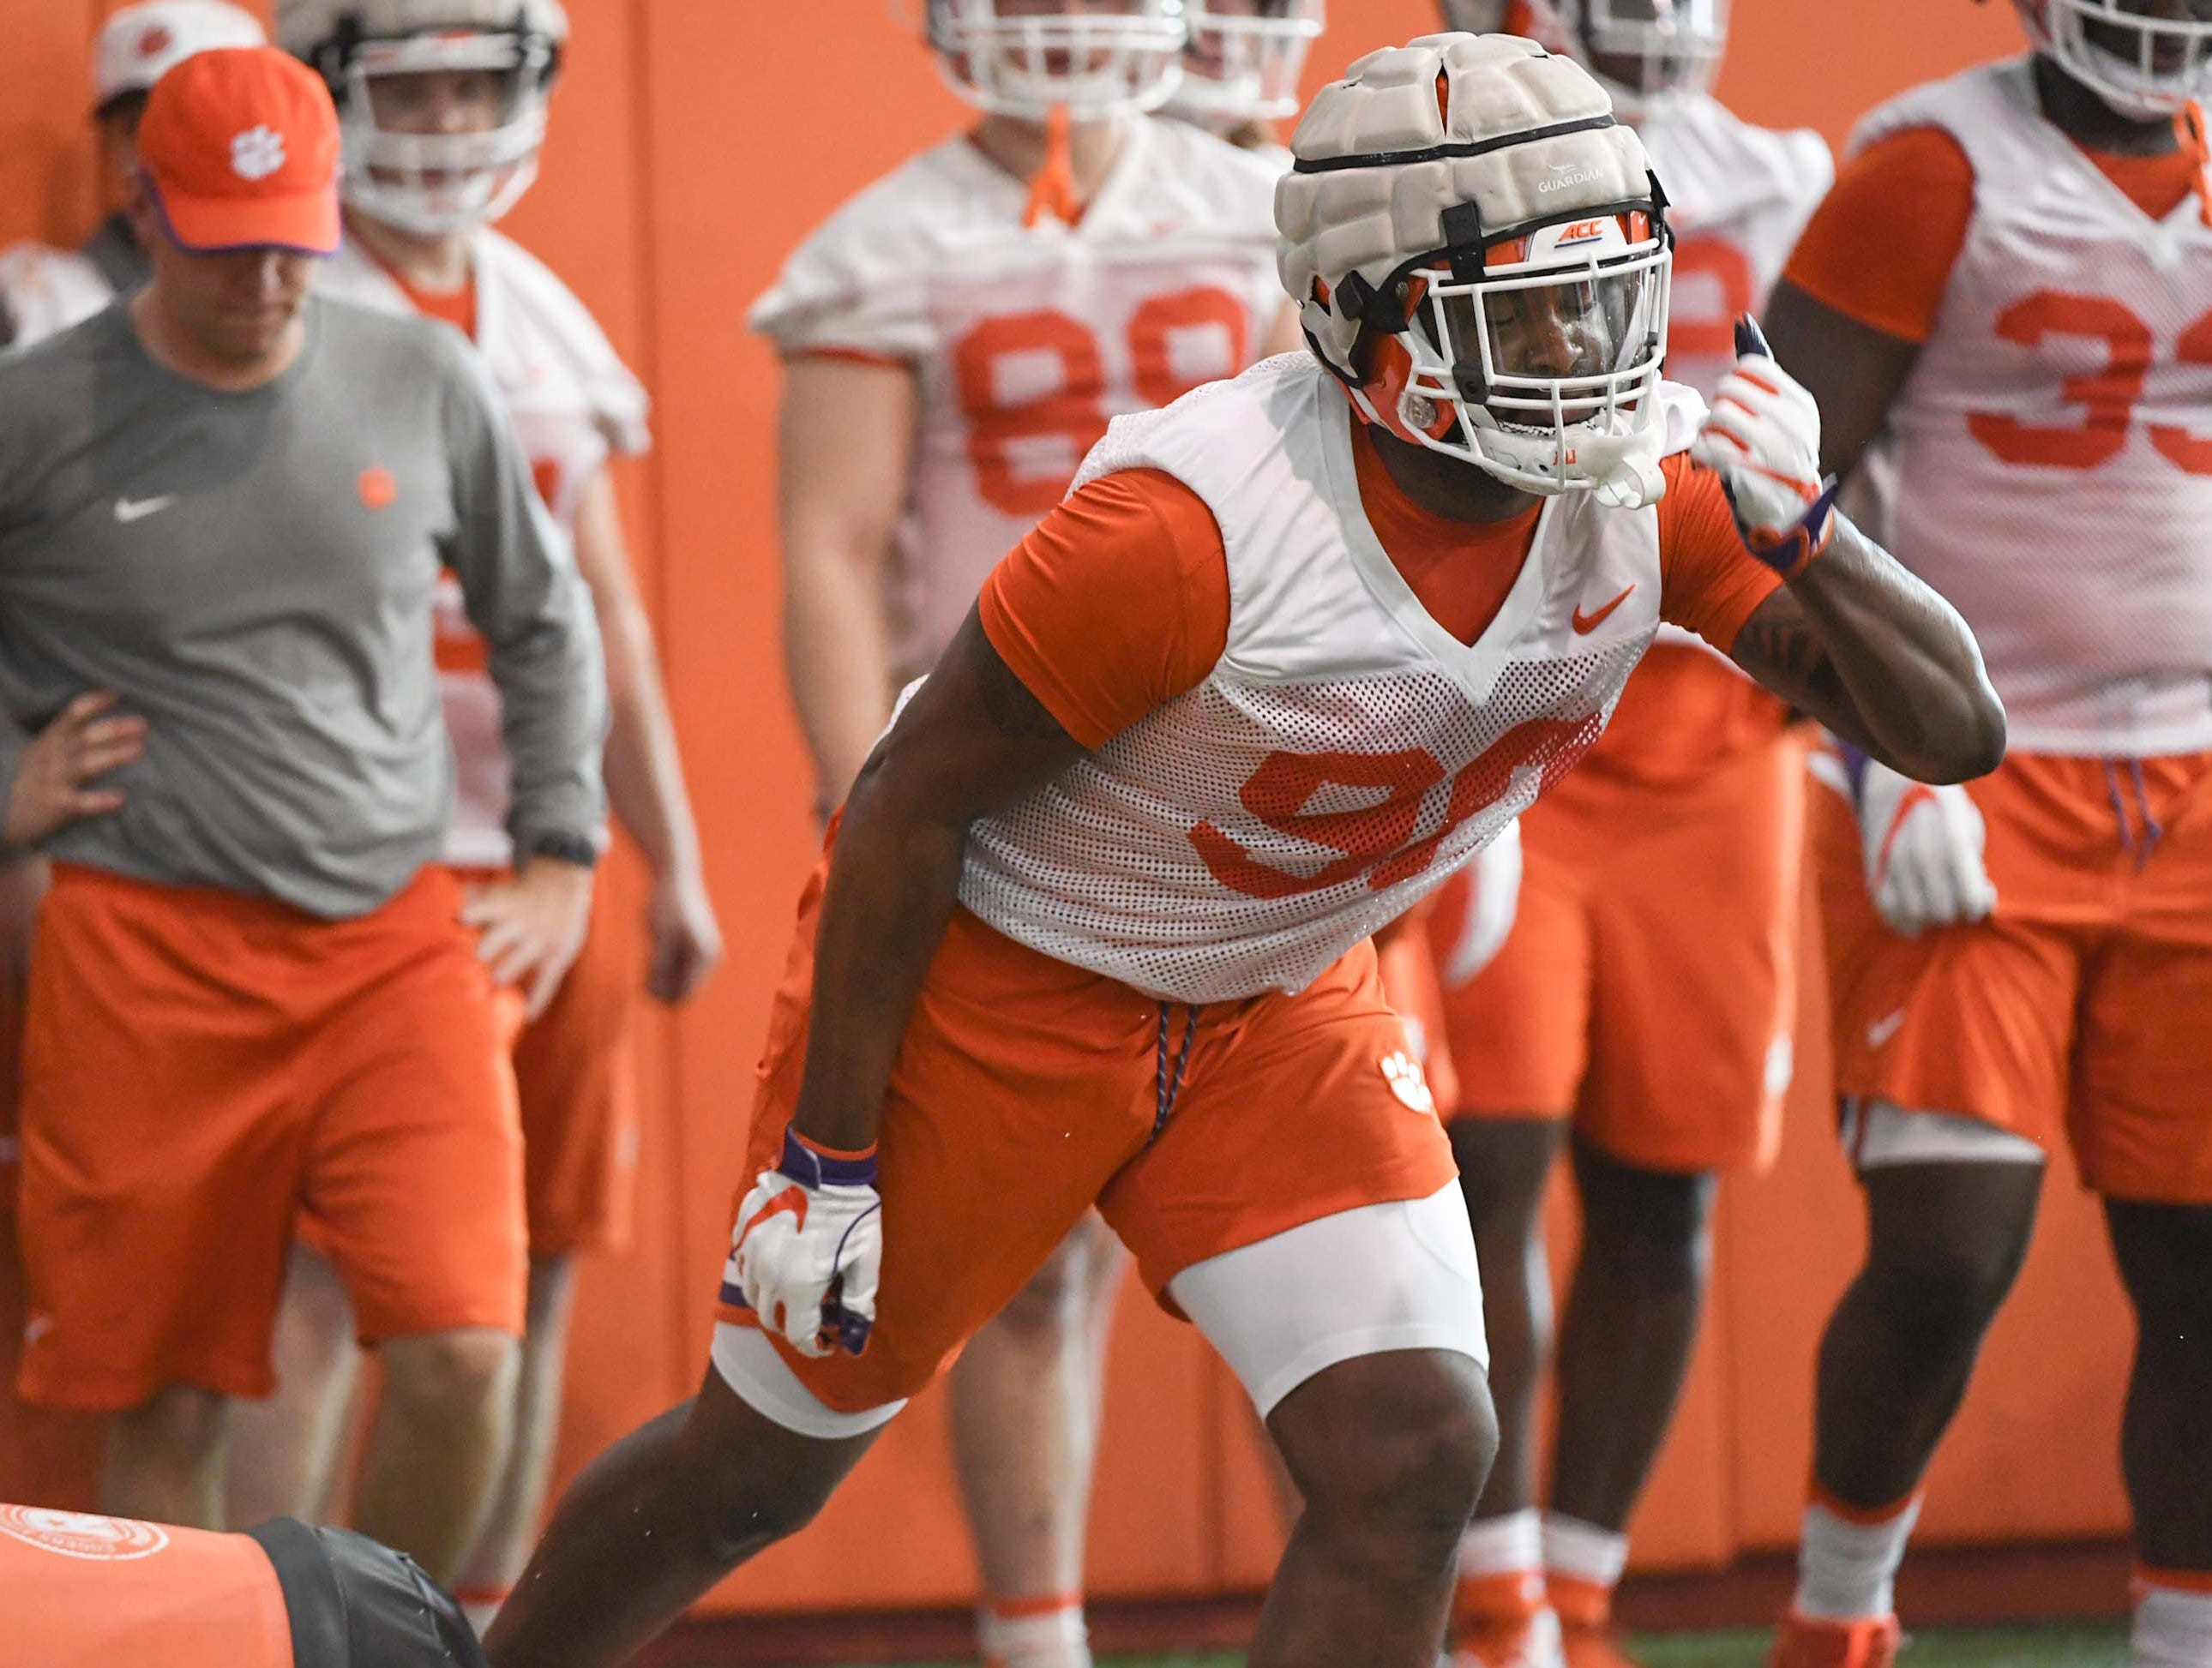 Clemson defensive tackle Darnell Jefferies (90) during the first practice at the Clemson Indoor Practice Facility in Clemson Wednesday, February 27, 2019.